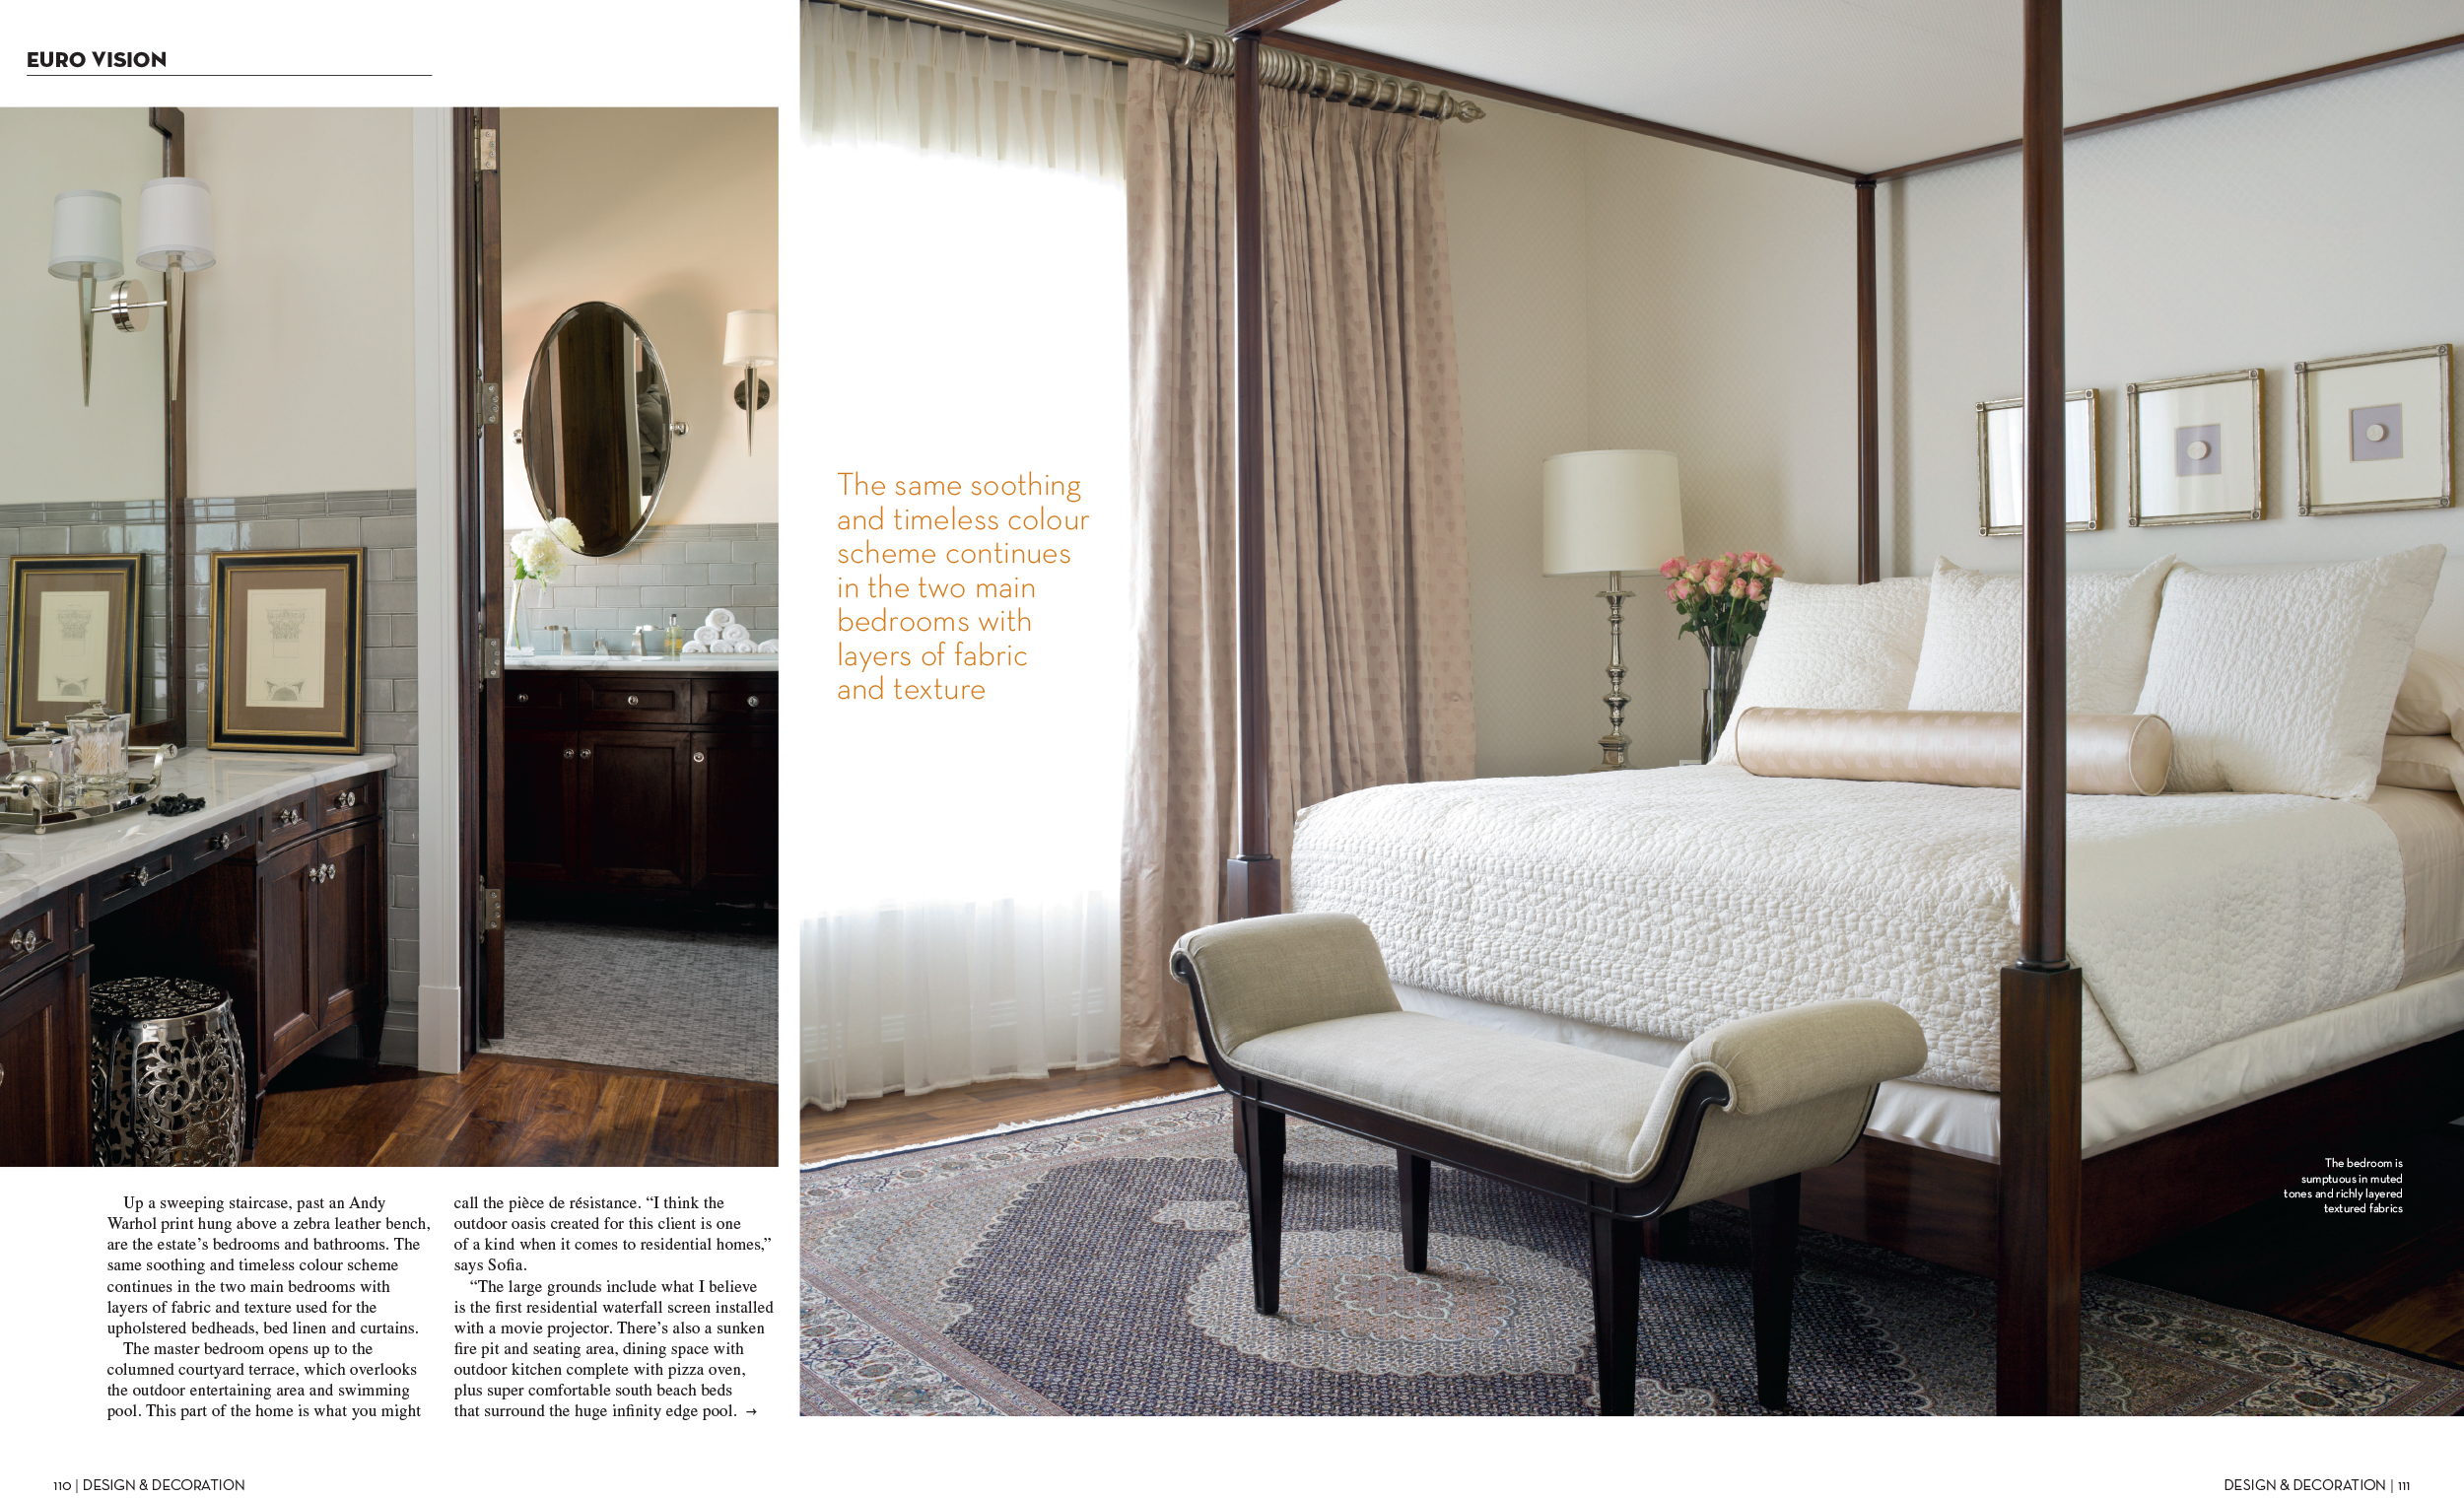 Design and Decoration Magazine October  2014-5.jpg